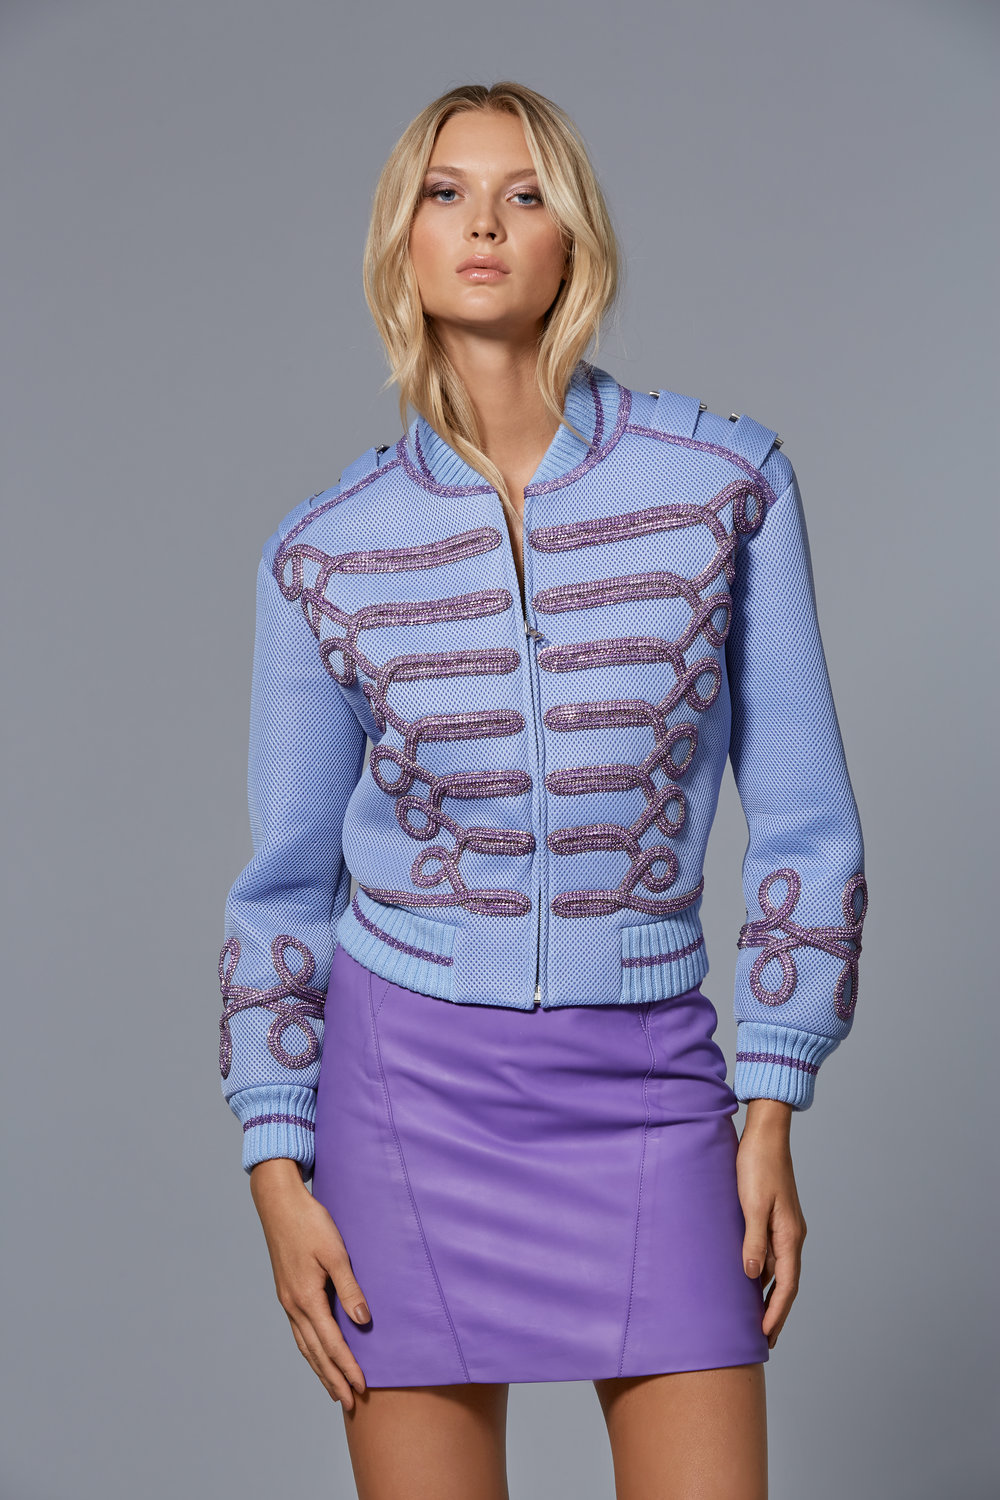 CLAUDIO CINA   LOOK 6:  Mesh Neoprene Bomber with Embroidered Crystal Cording  Leather Mini Skirt